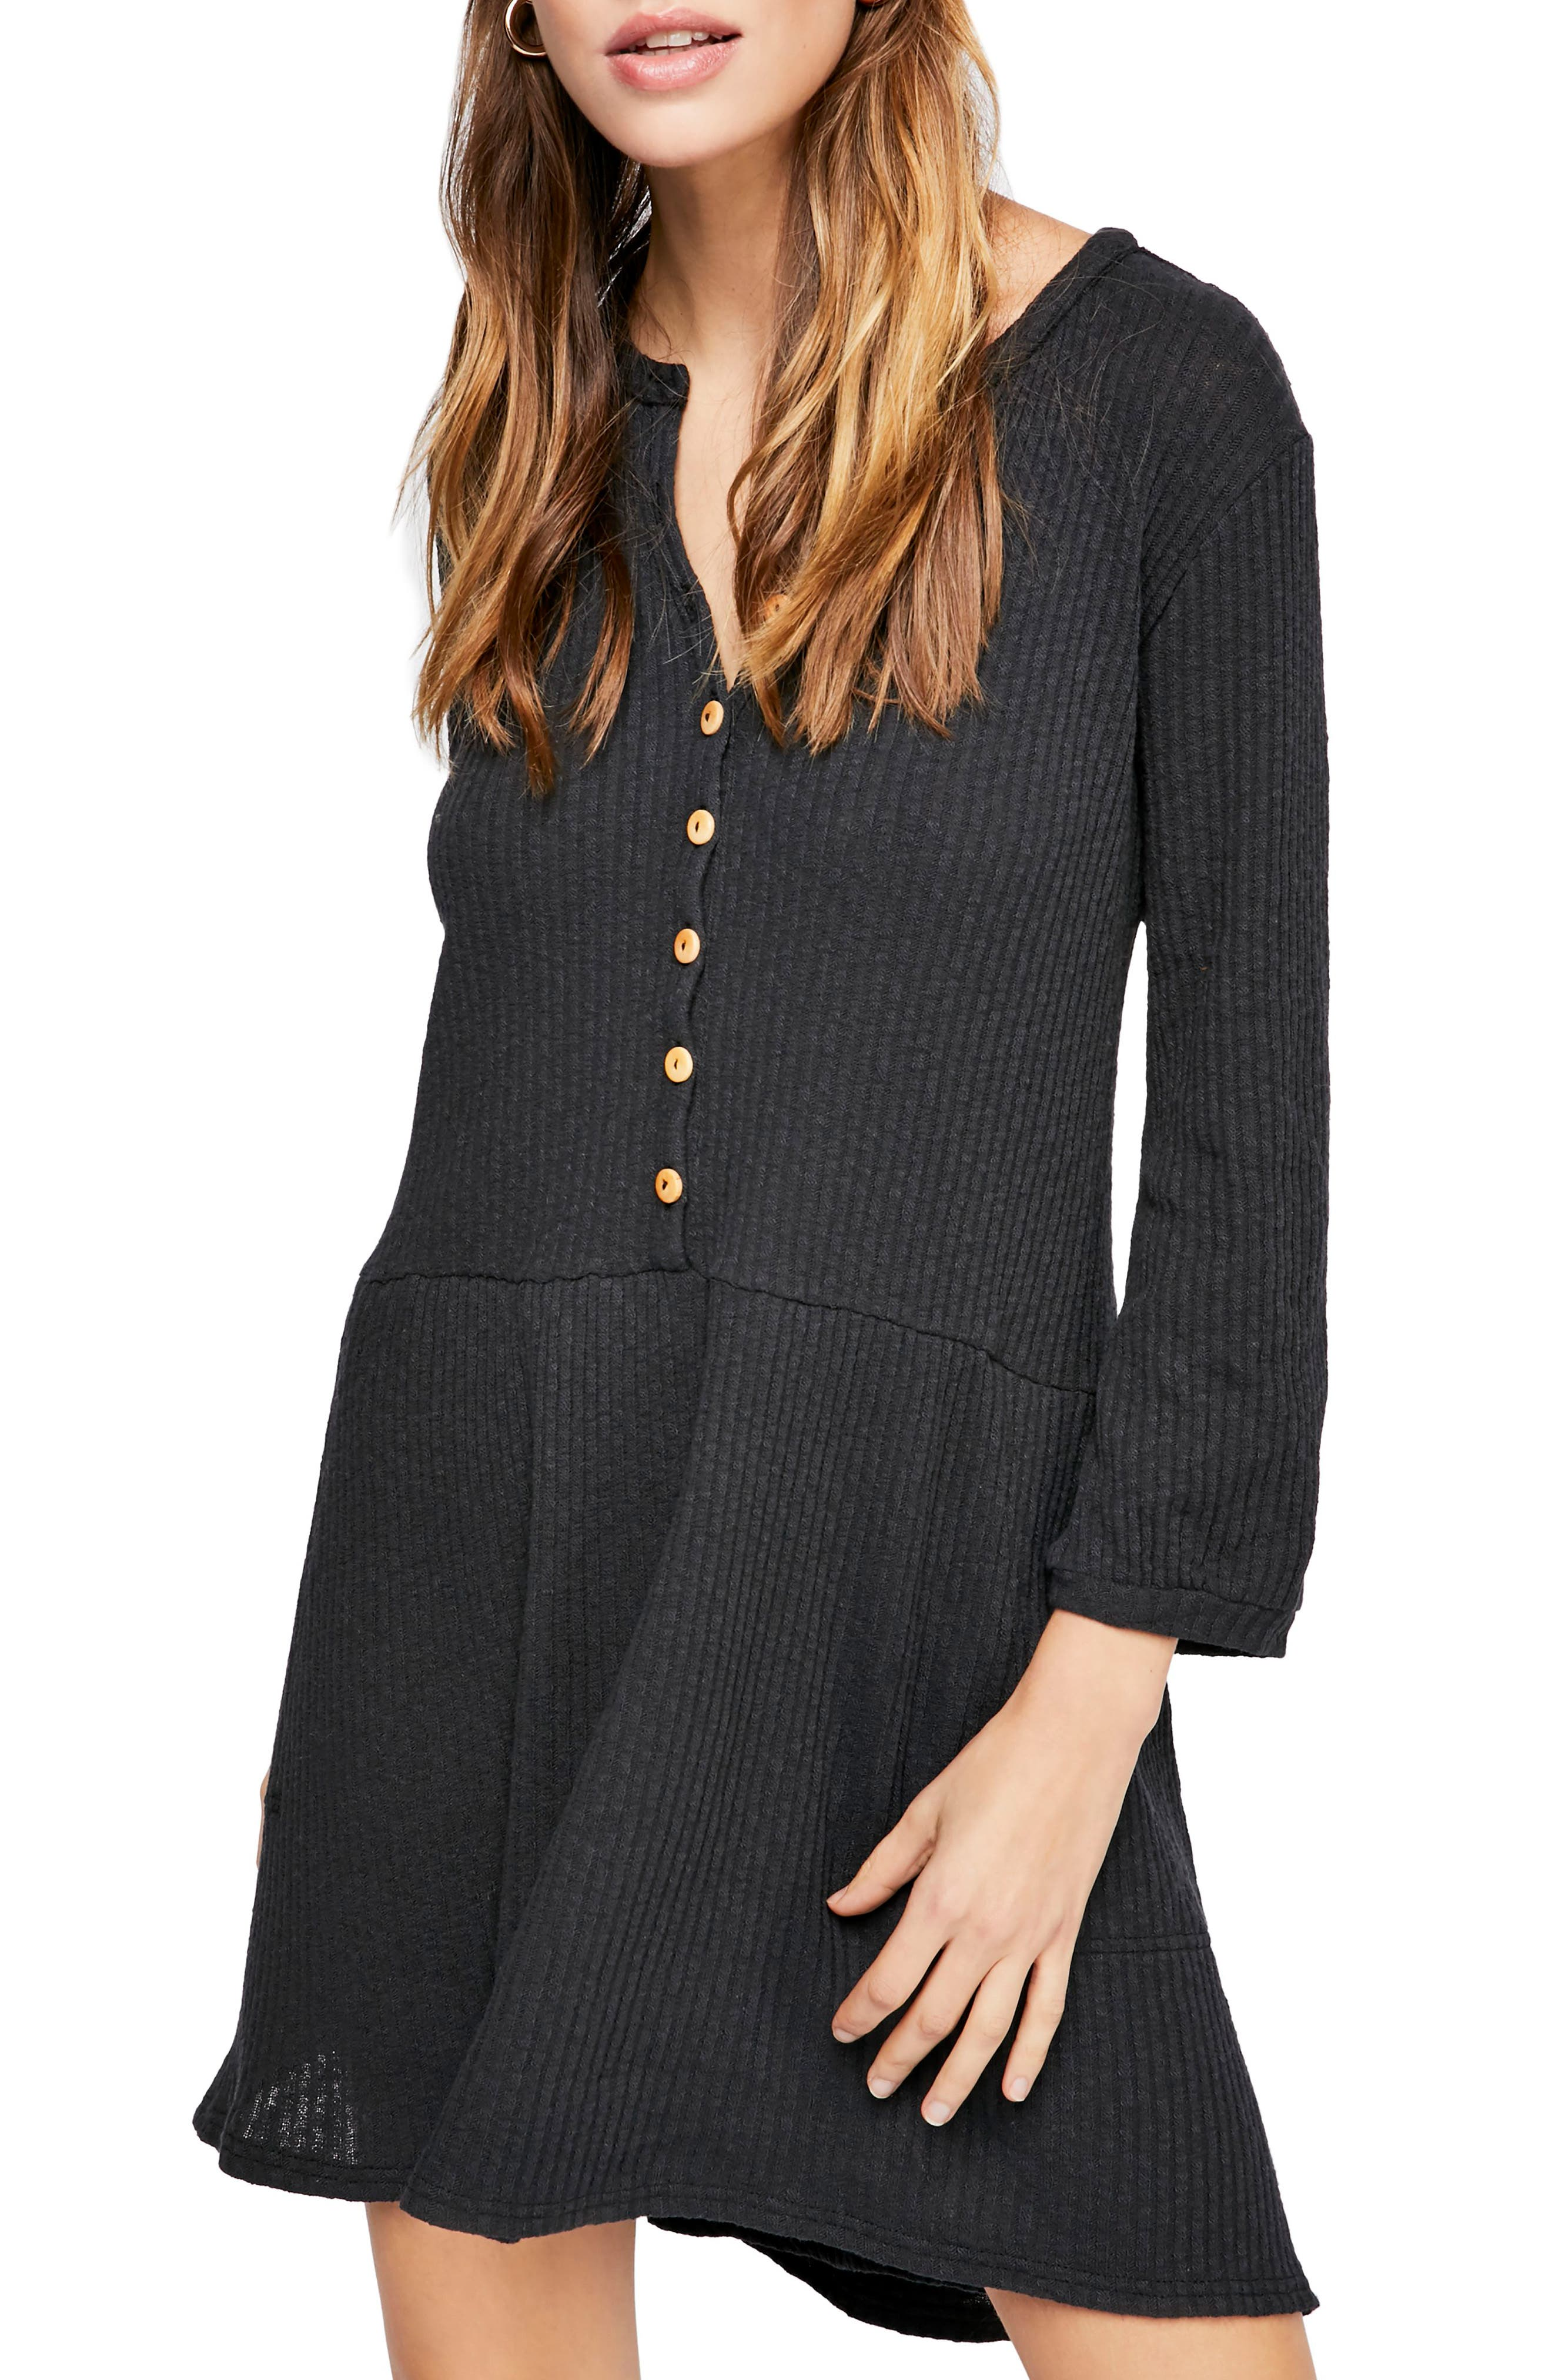 FREE PEOPLE Endless Summer by Free People Blossom Stretch Cotton Dress, Main, color, BLACK